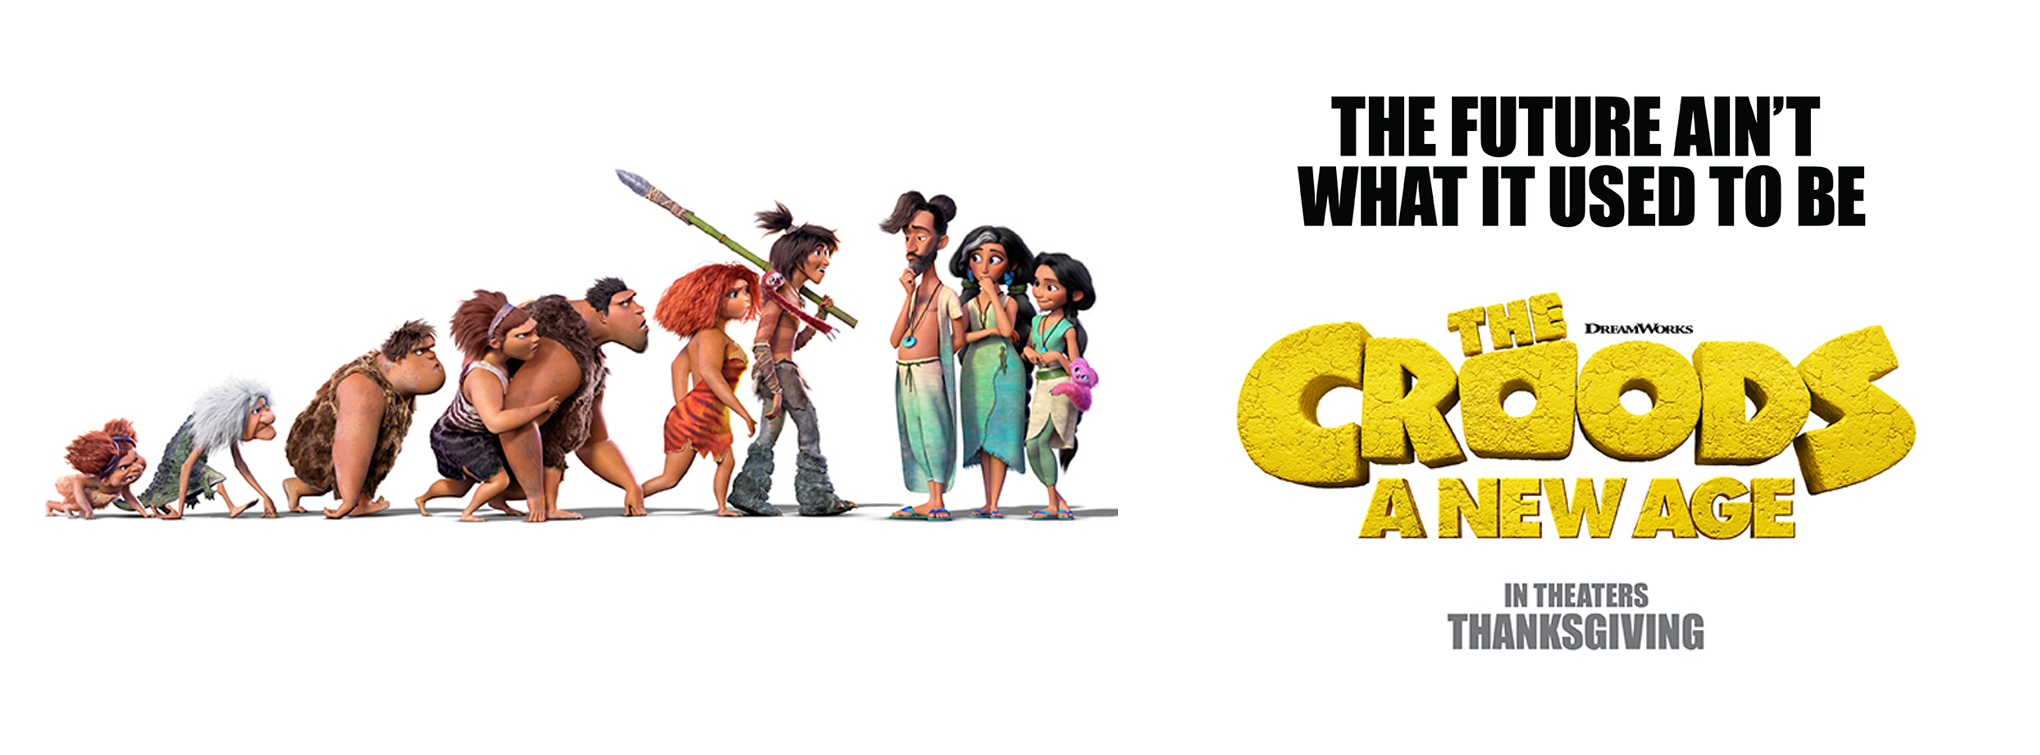 Slider image for The Croods: A New Age